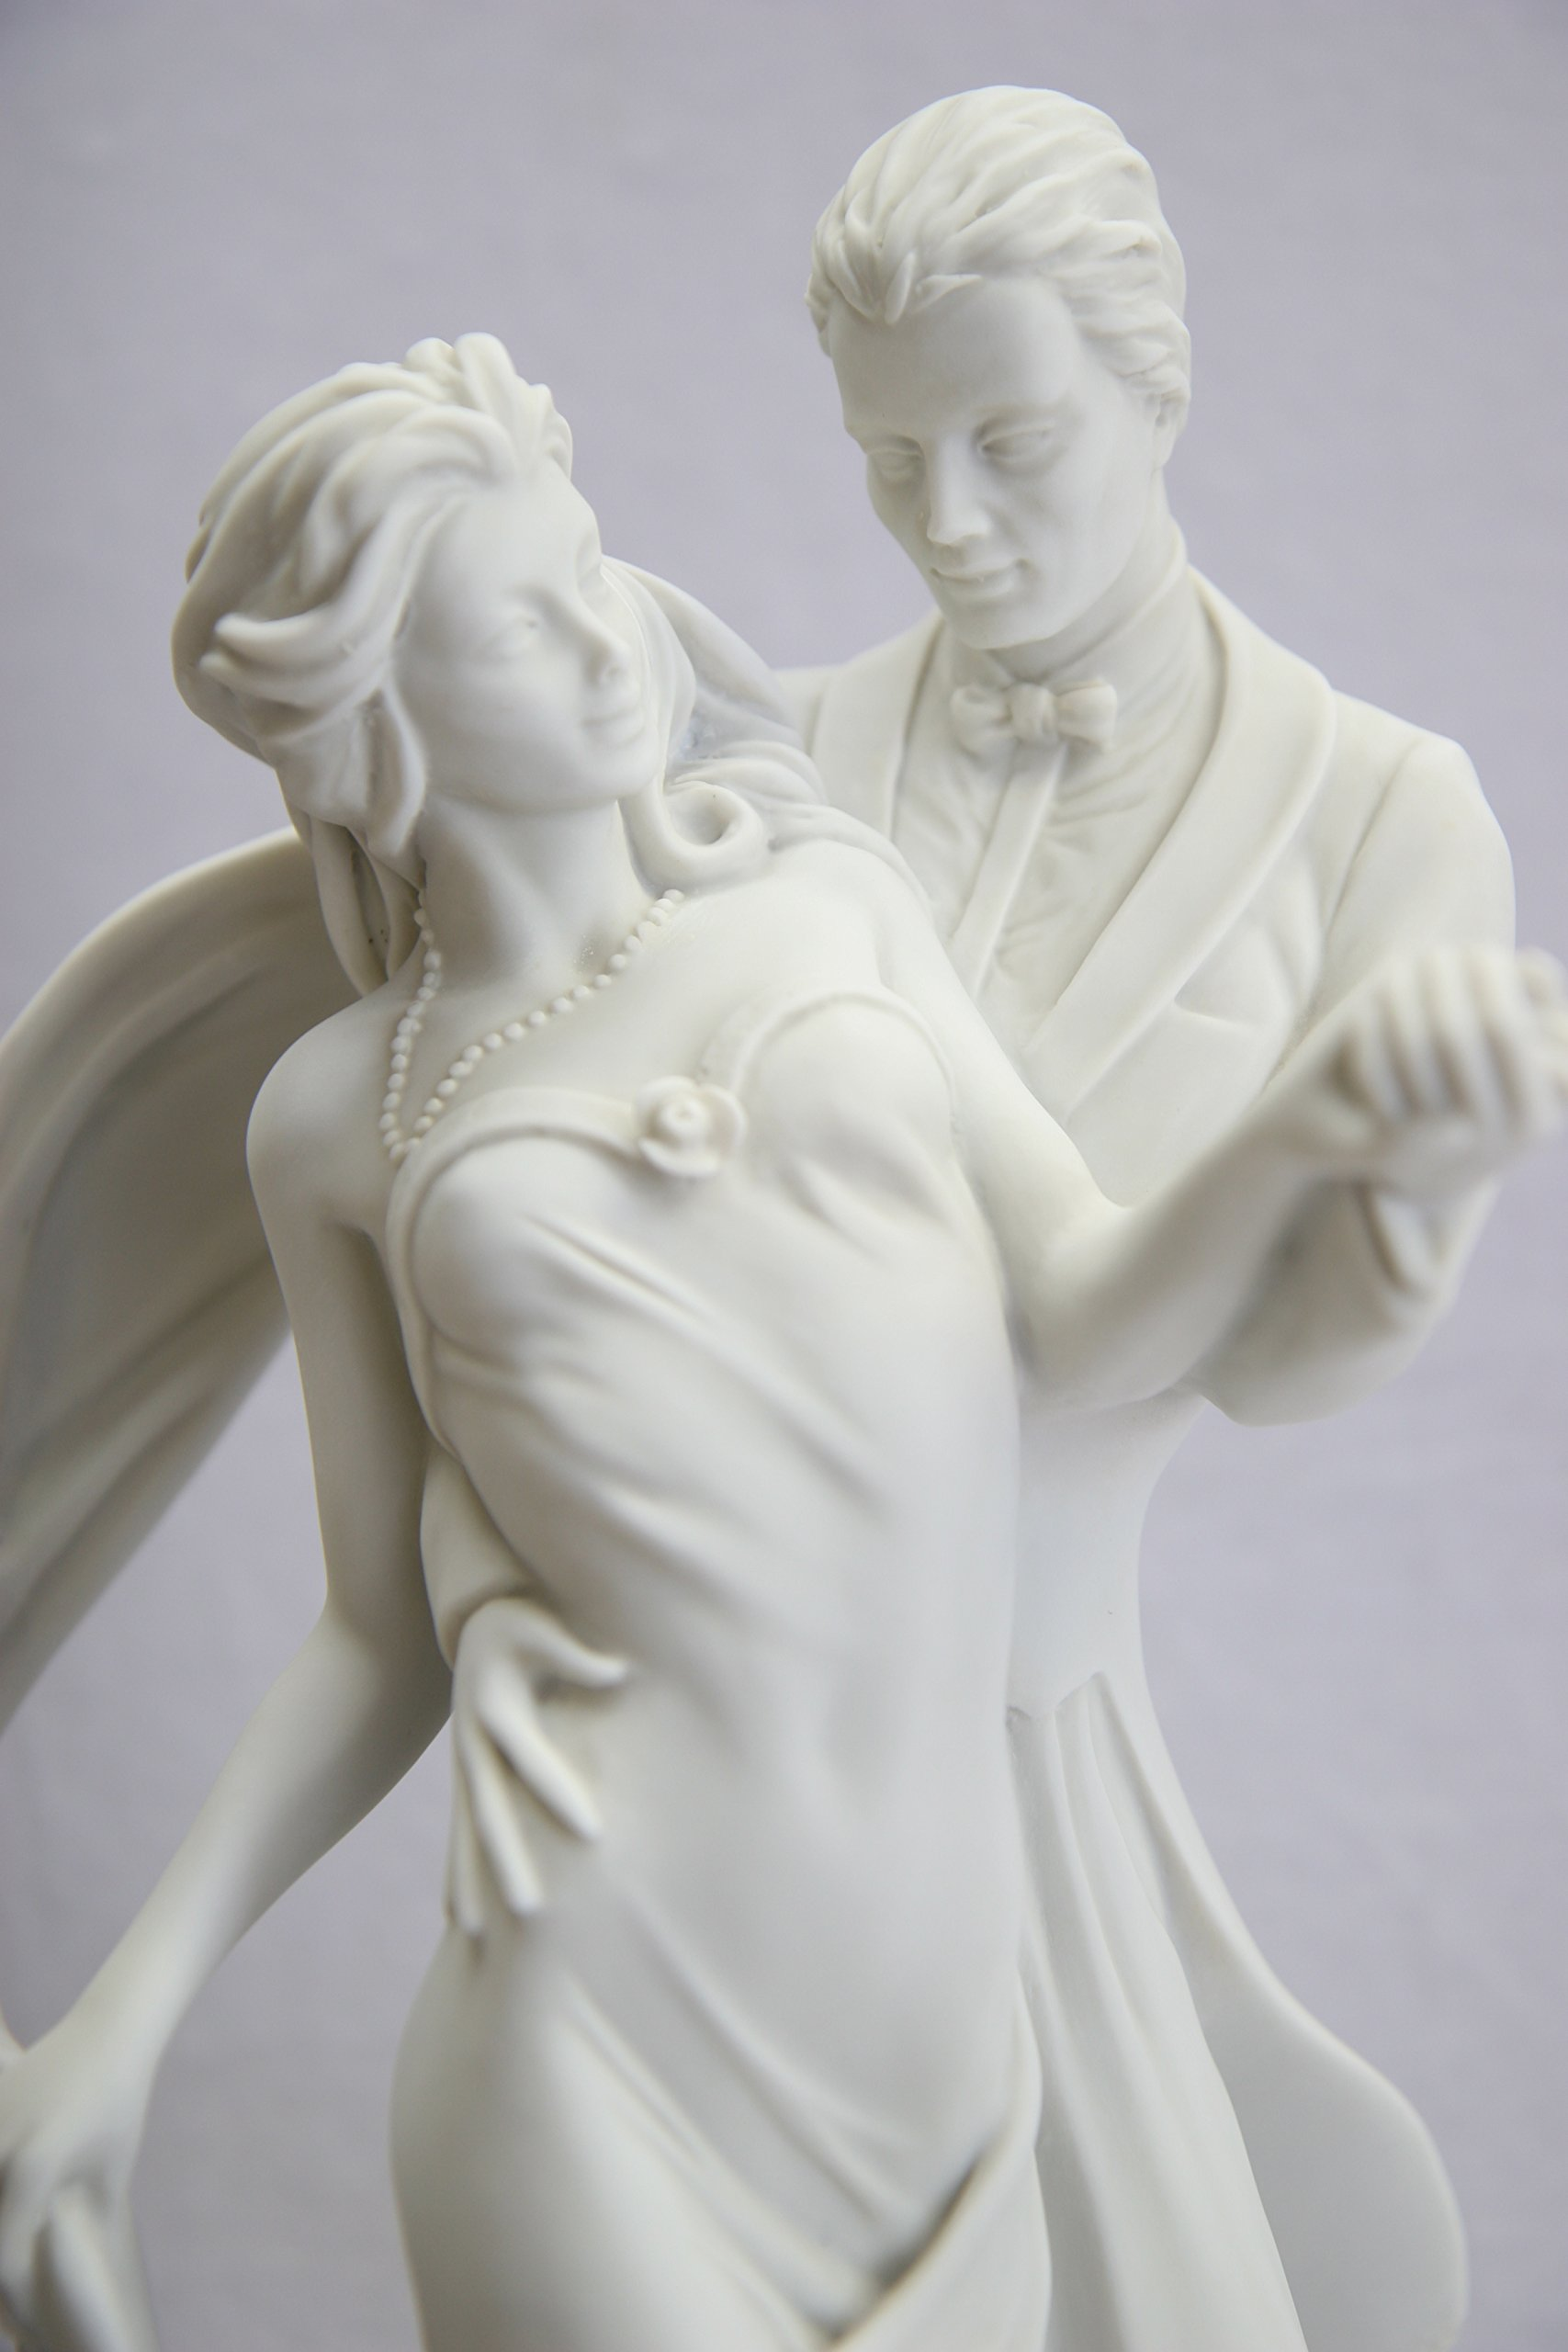 15.5'' Romantic Couple of Dancer Dance Statue Sculpture Figurine By Vittoria Collection Made in Italy by Vittoria Collection (Image #4)